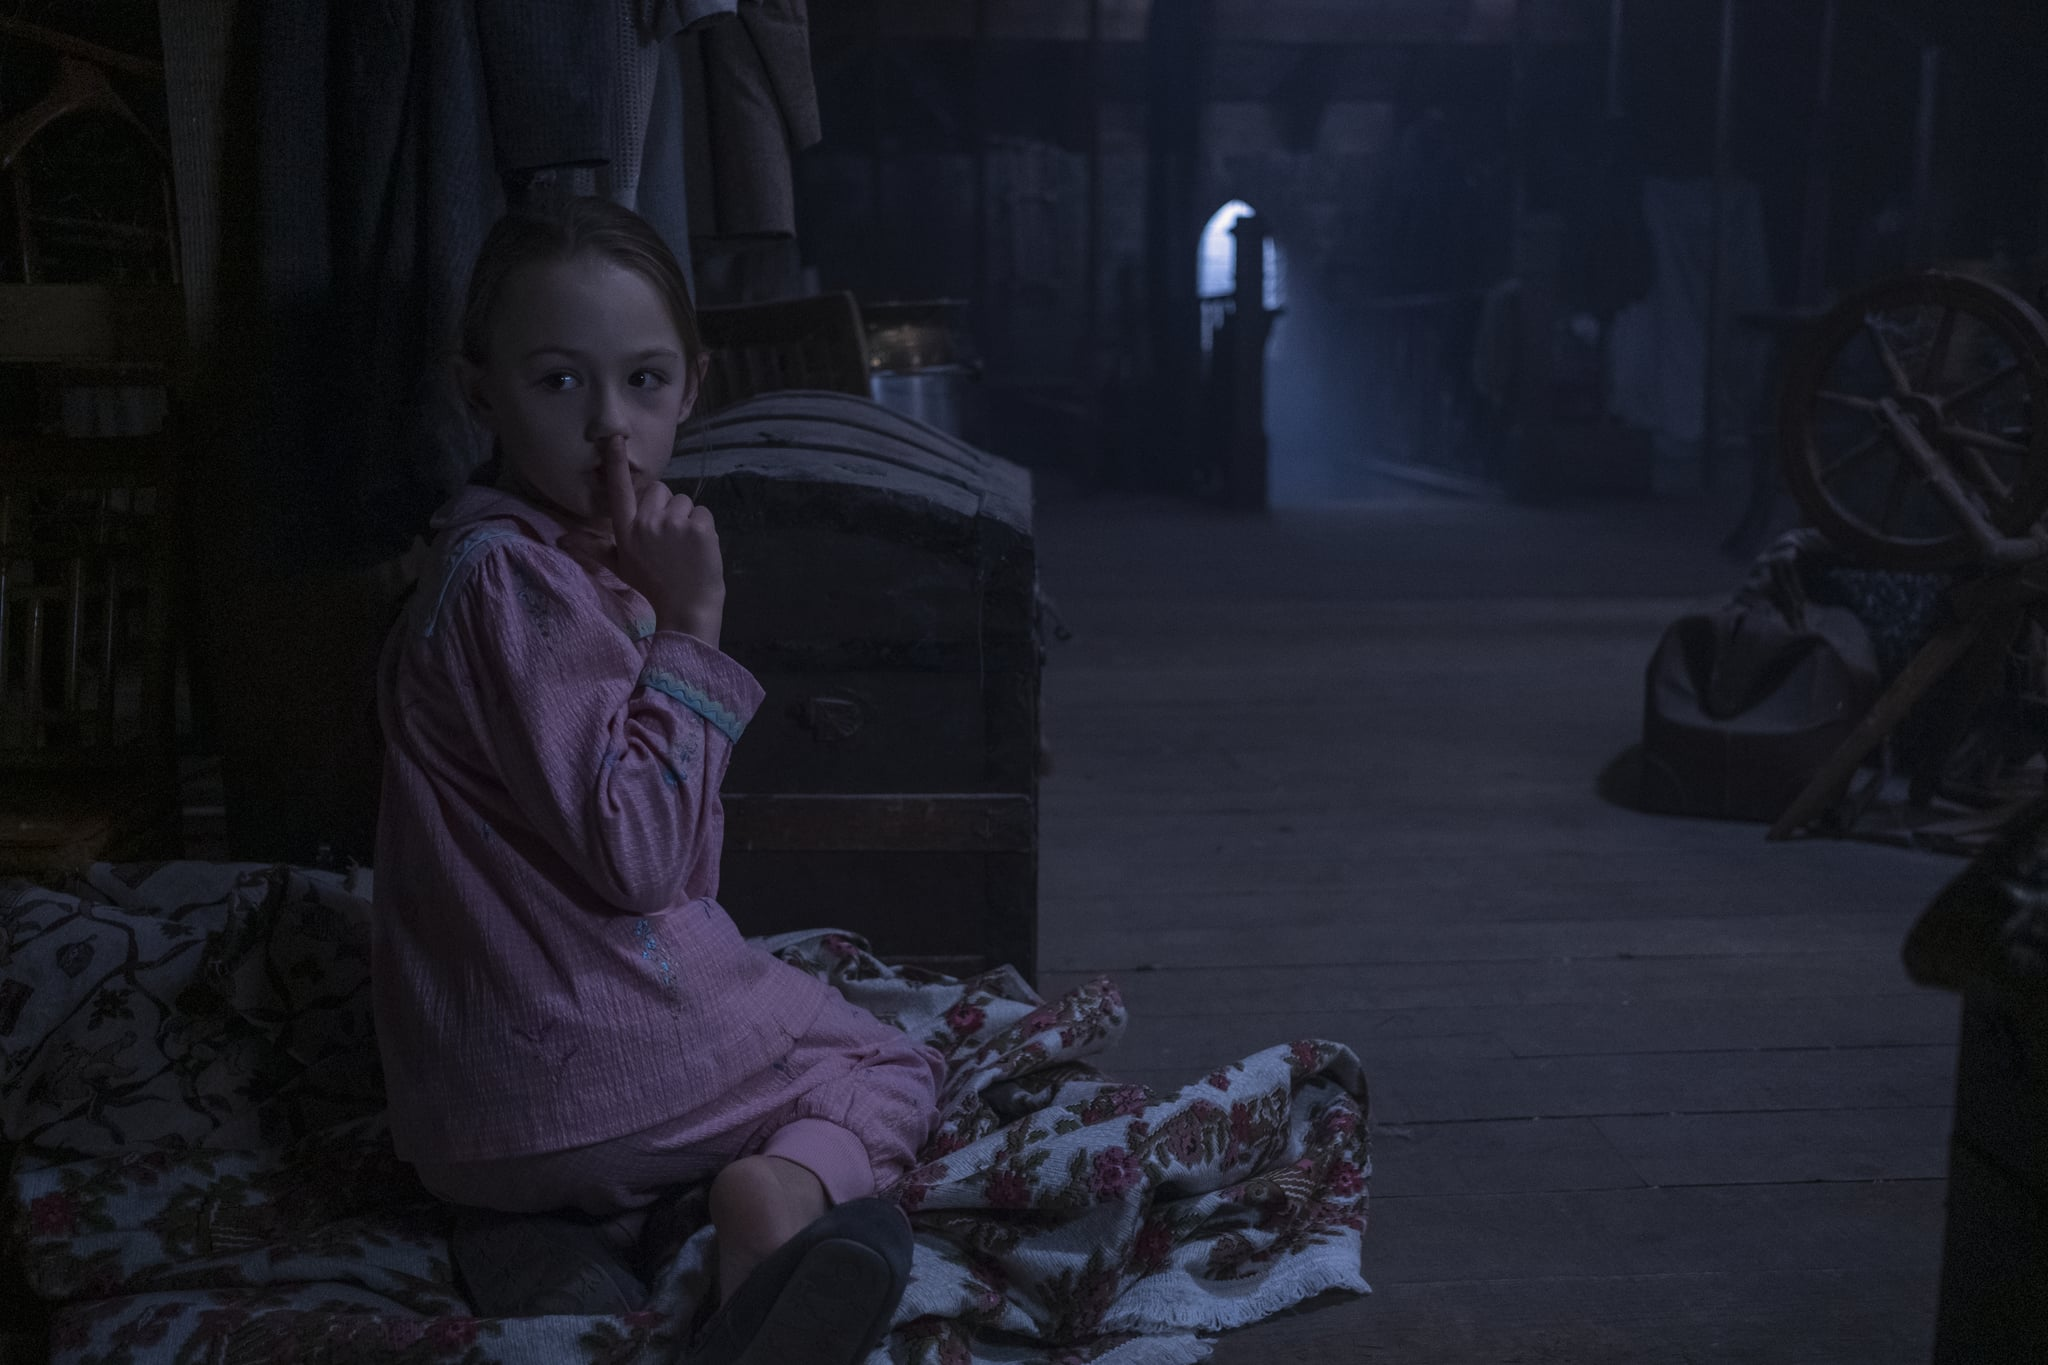 THE HAUNTING OF BLY MANOR (L to R) AMELIE BAE SMITH as FLORA in THE HAUNTING OF BLY MANOR. Cr. EIKE SCHROTER/NETFLIX  2020